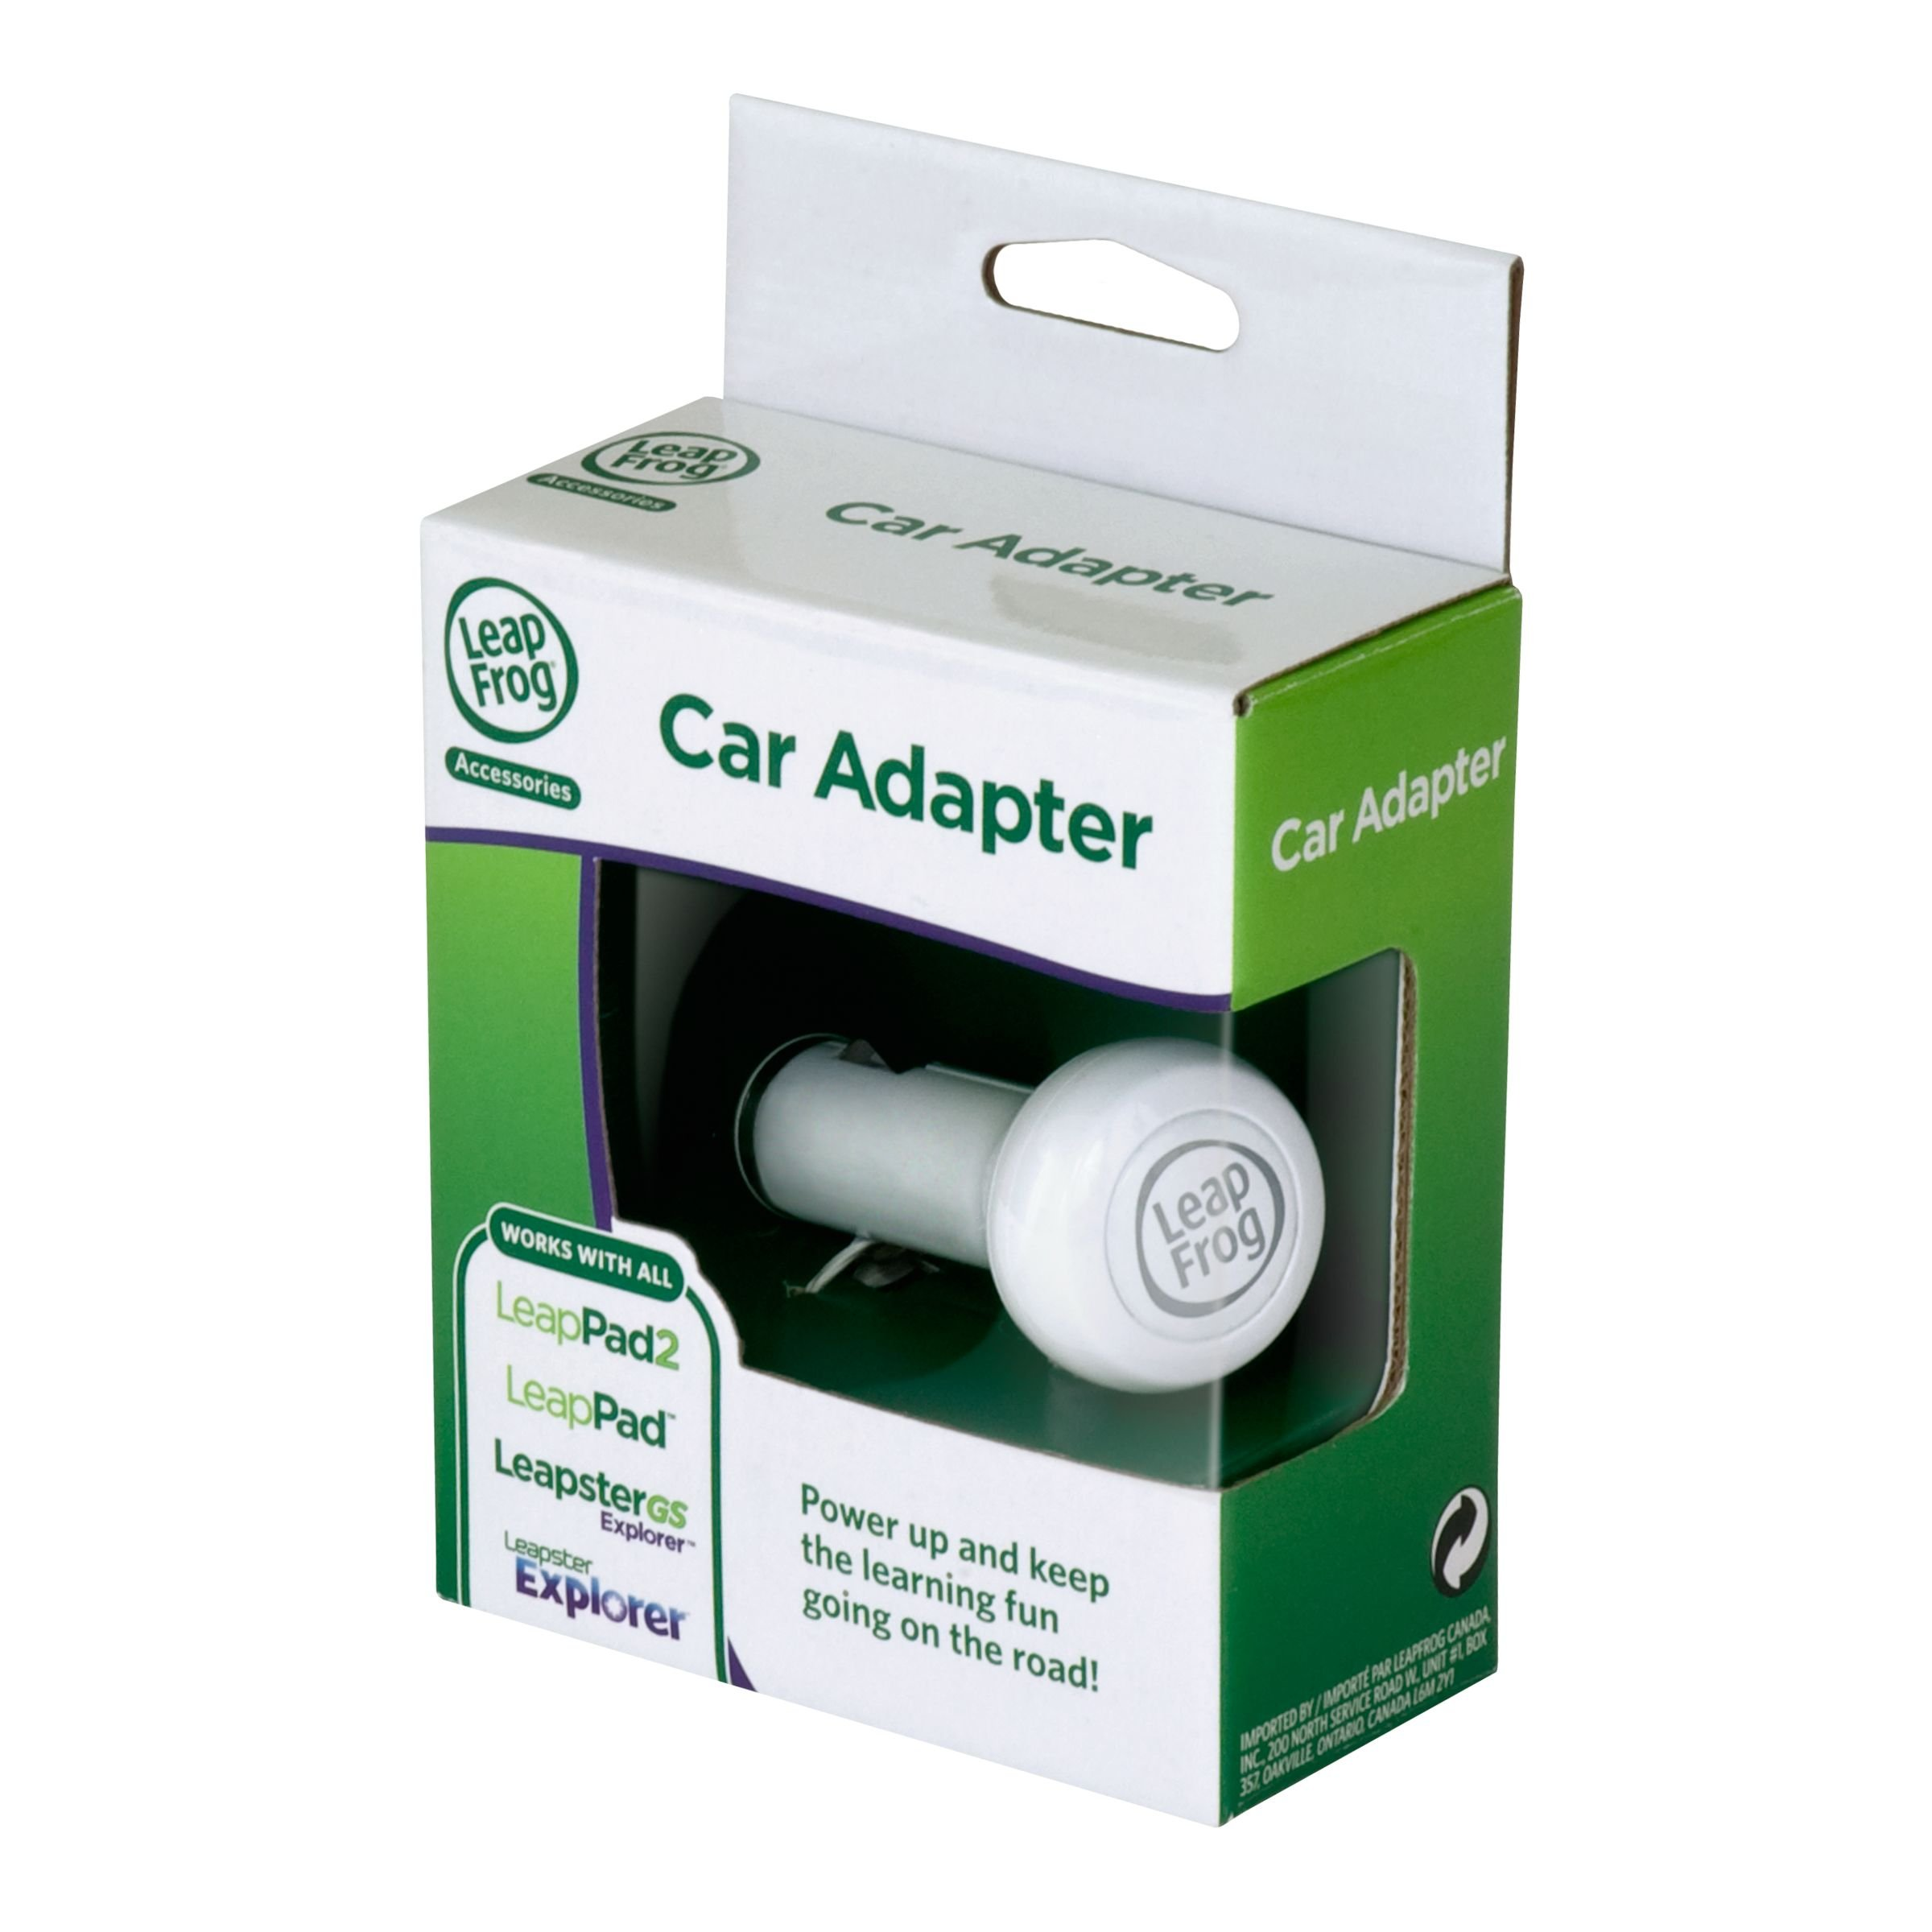 LeapFrog Car Adapter (Works with all LeapPad2 and LeapPad1 Tablets, LeapsterGS, and Leapster2) by LeapFrog (Image #4)